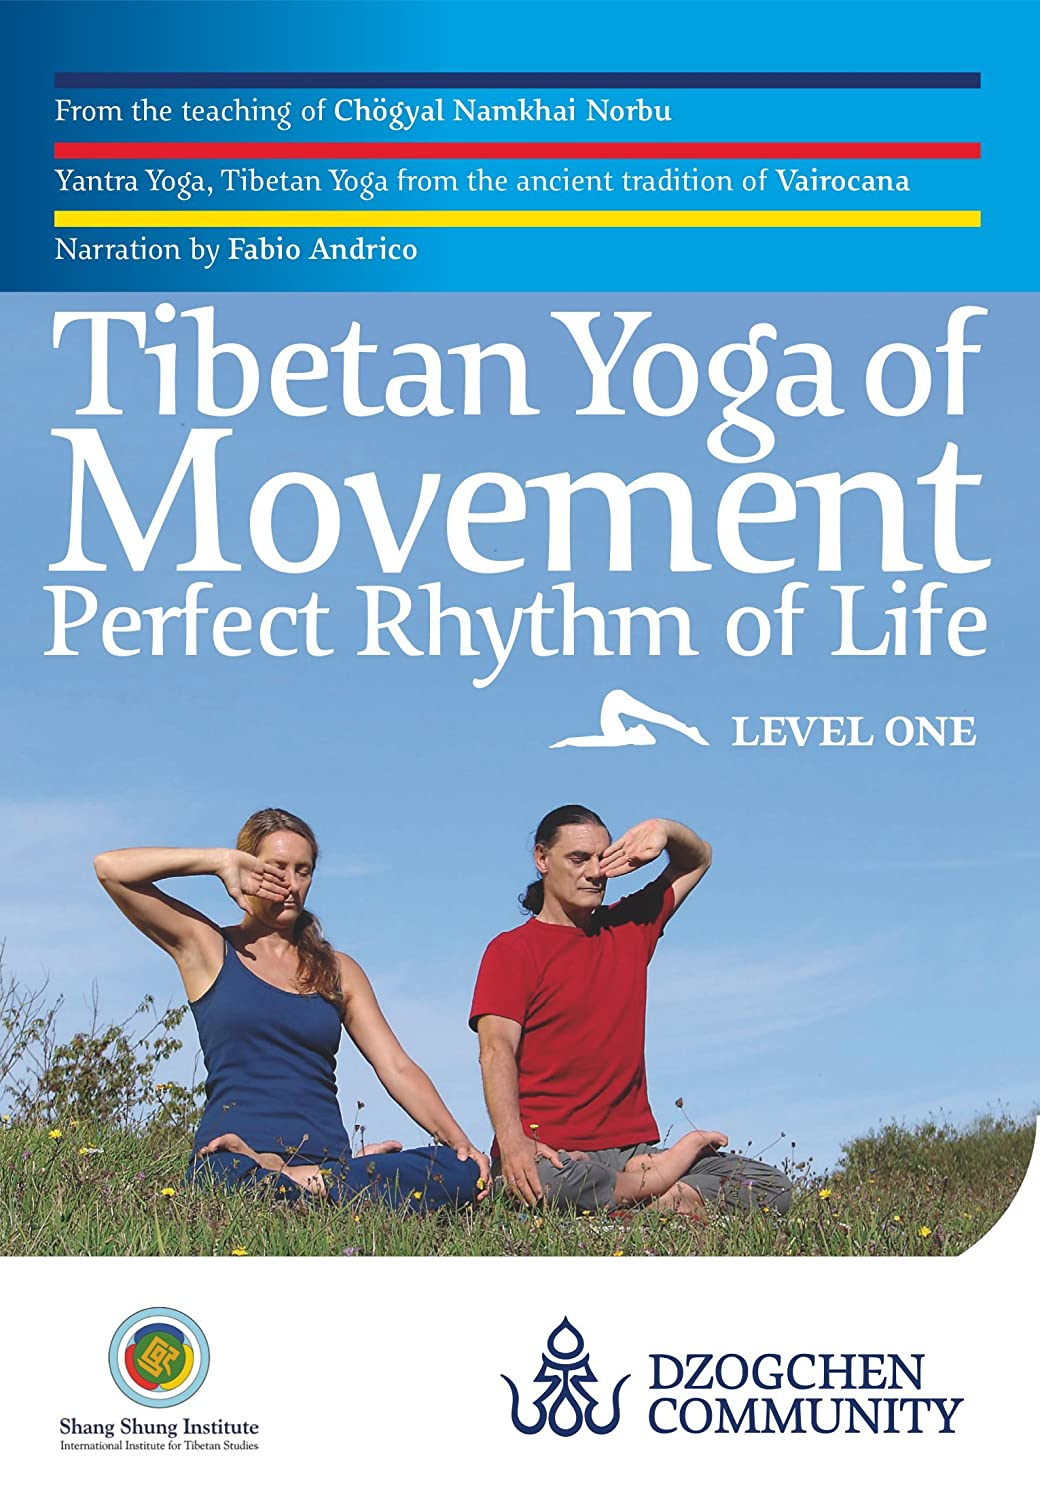 Amazon.com: Tibetan Yoga of Movement: Perfect Rhythm of Life ...